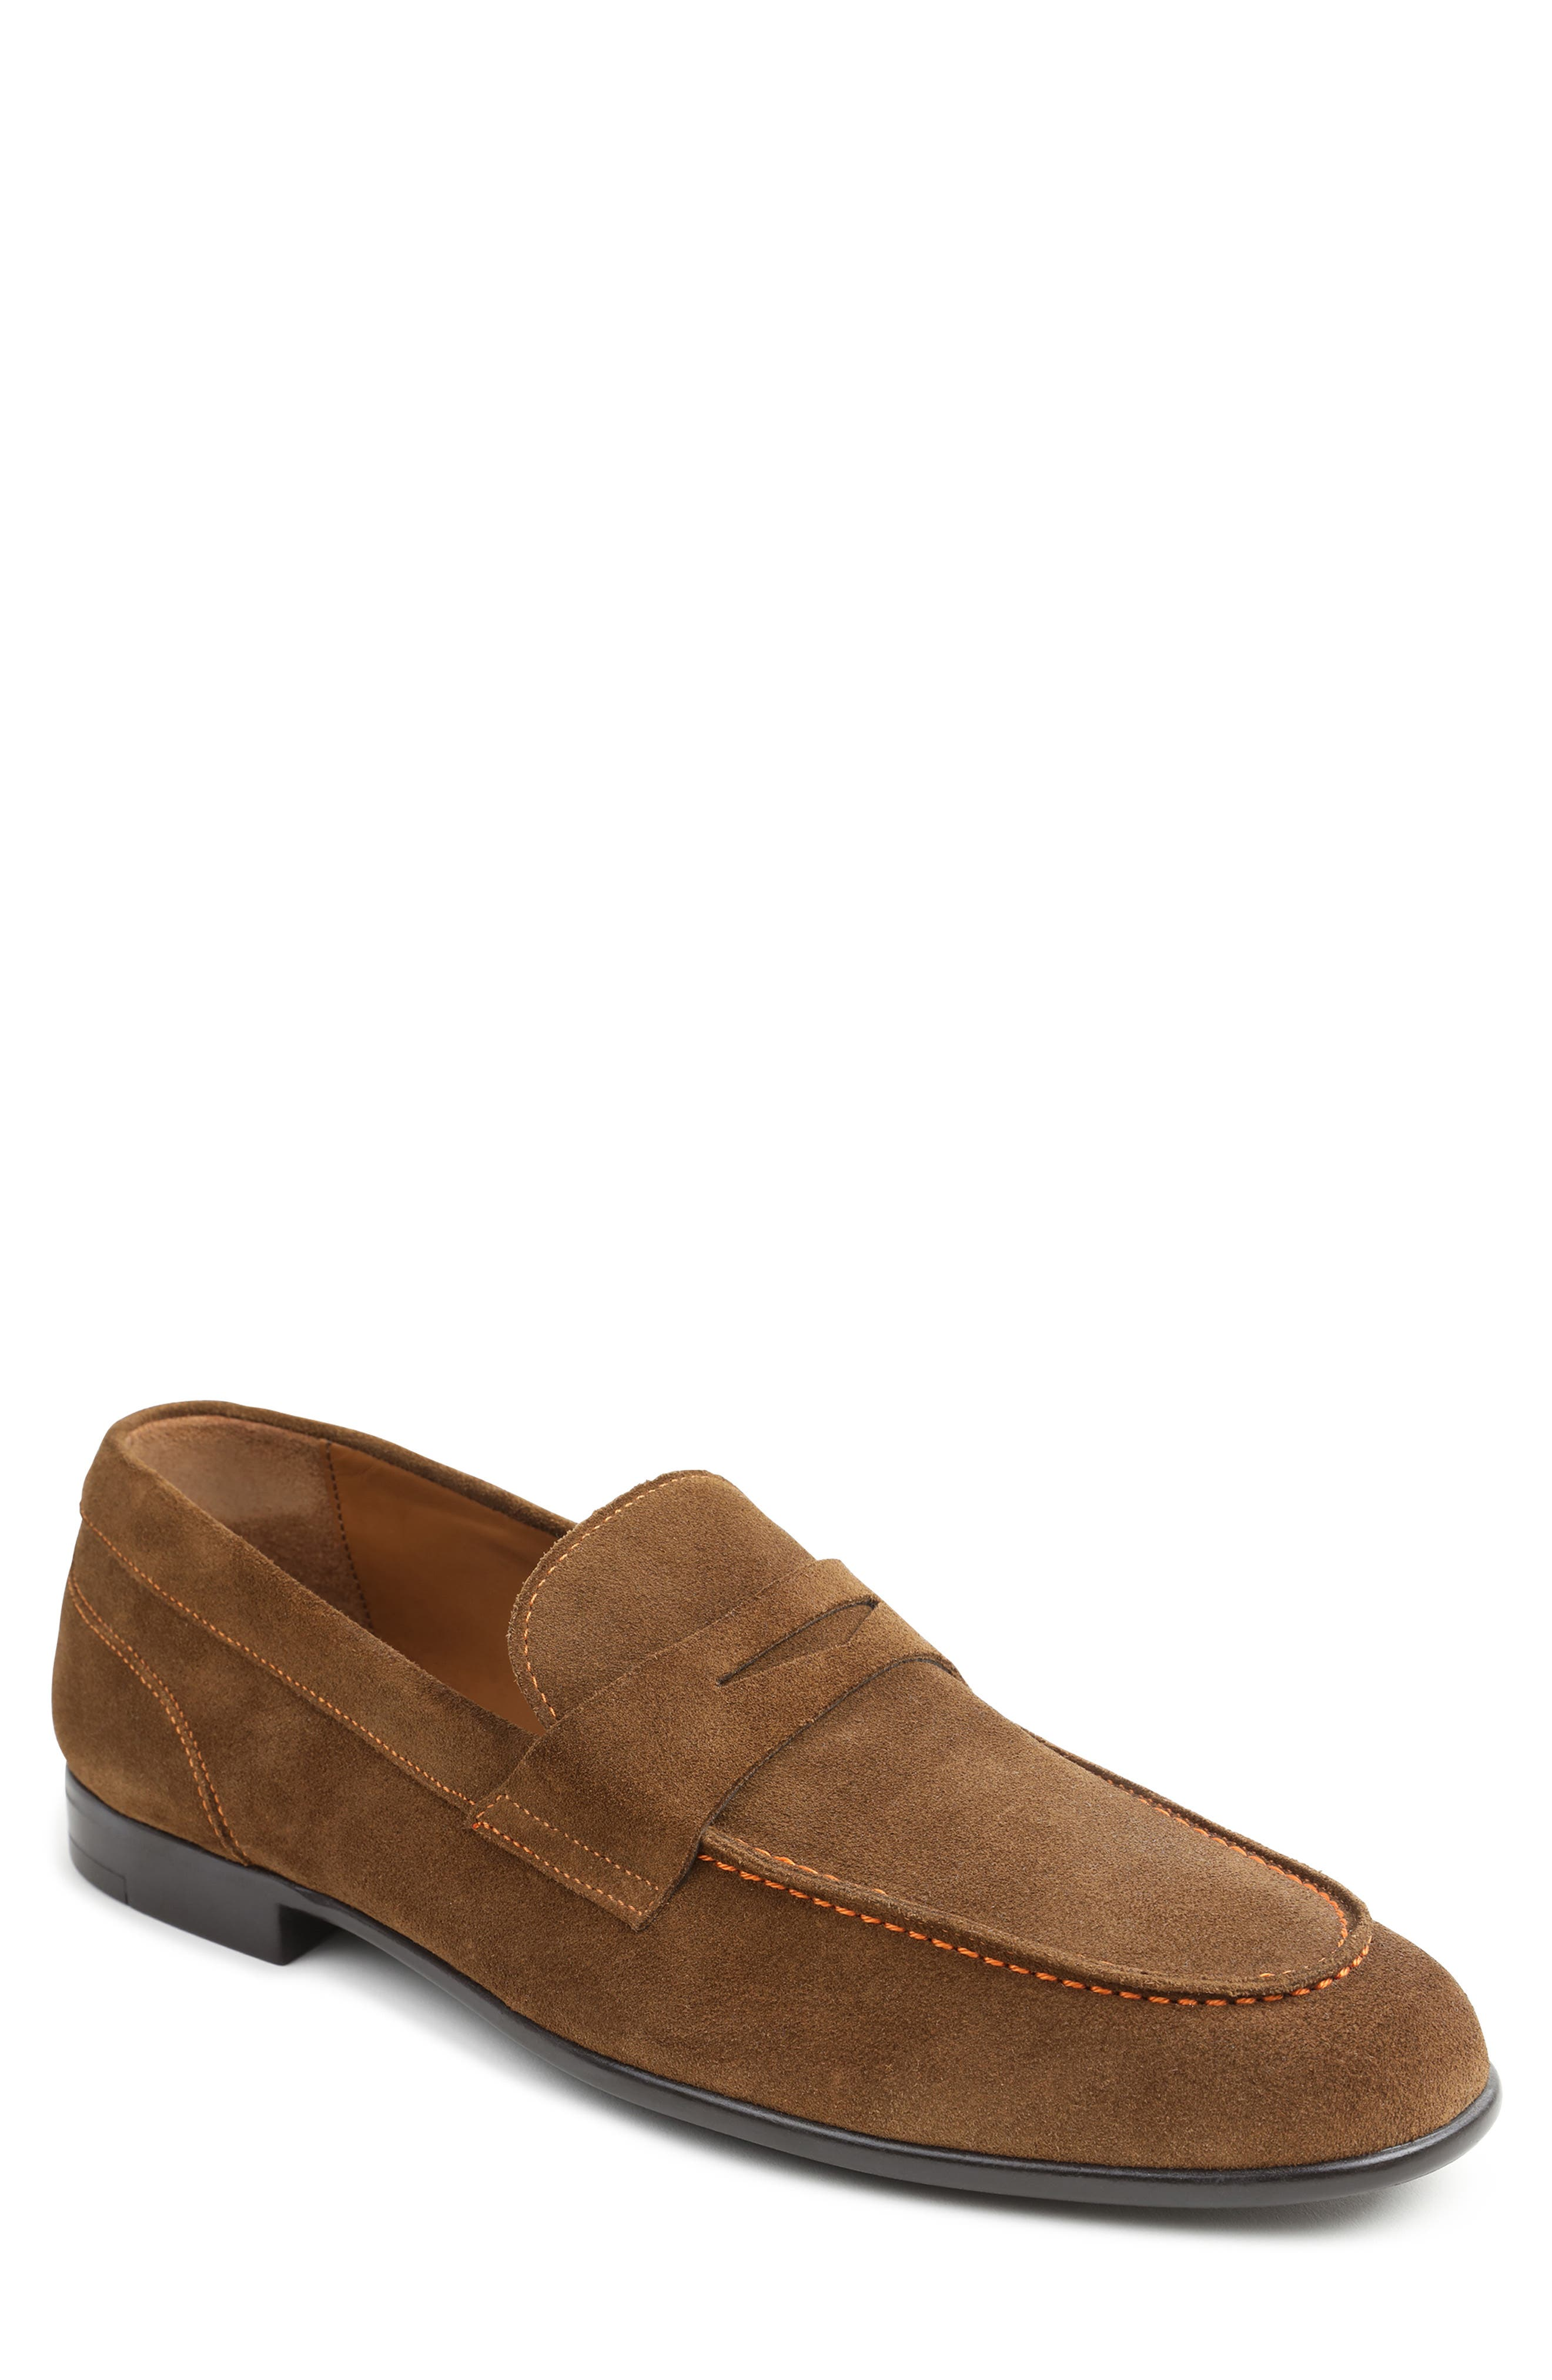 Silas Penny Loafer